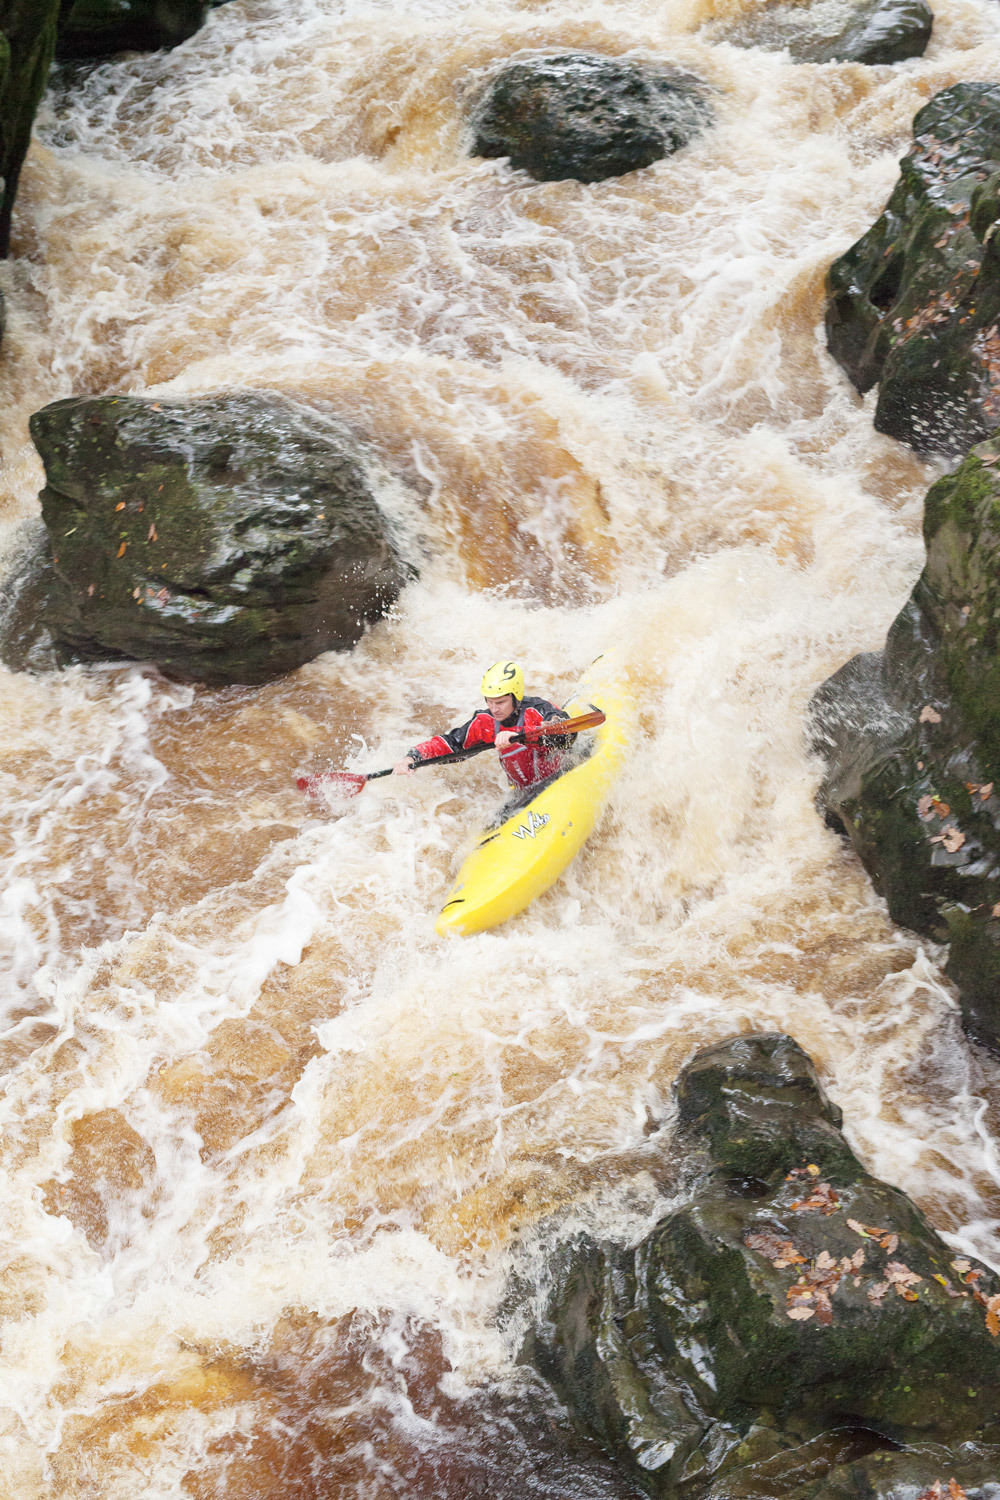 Tom Kayaking Rapids